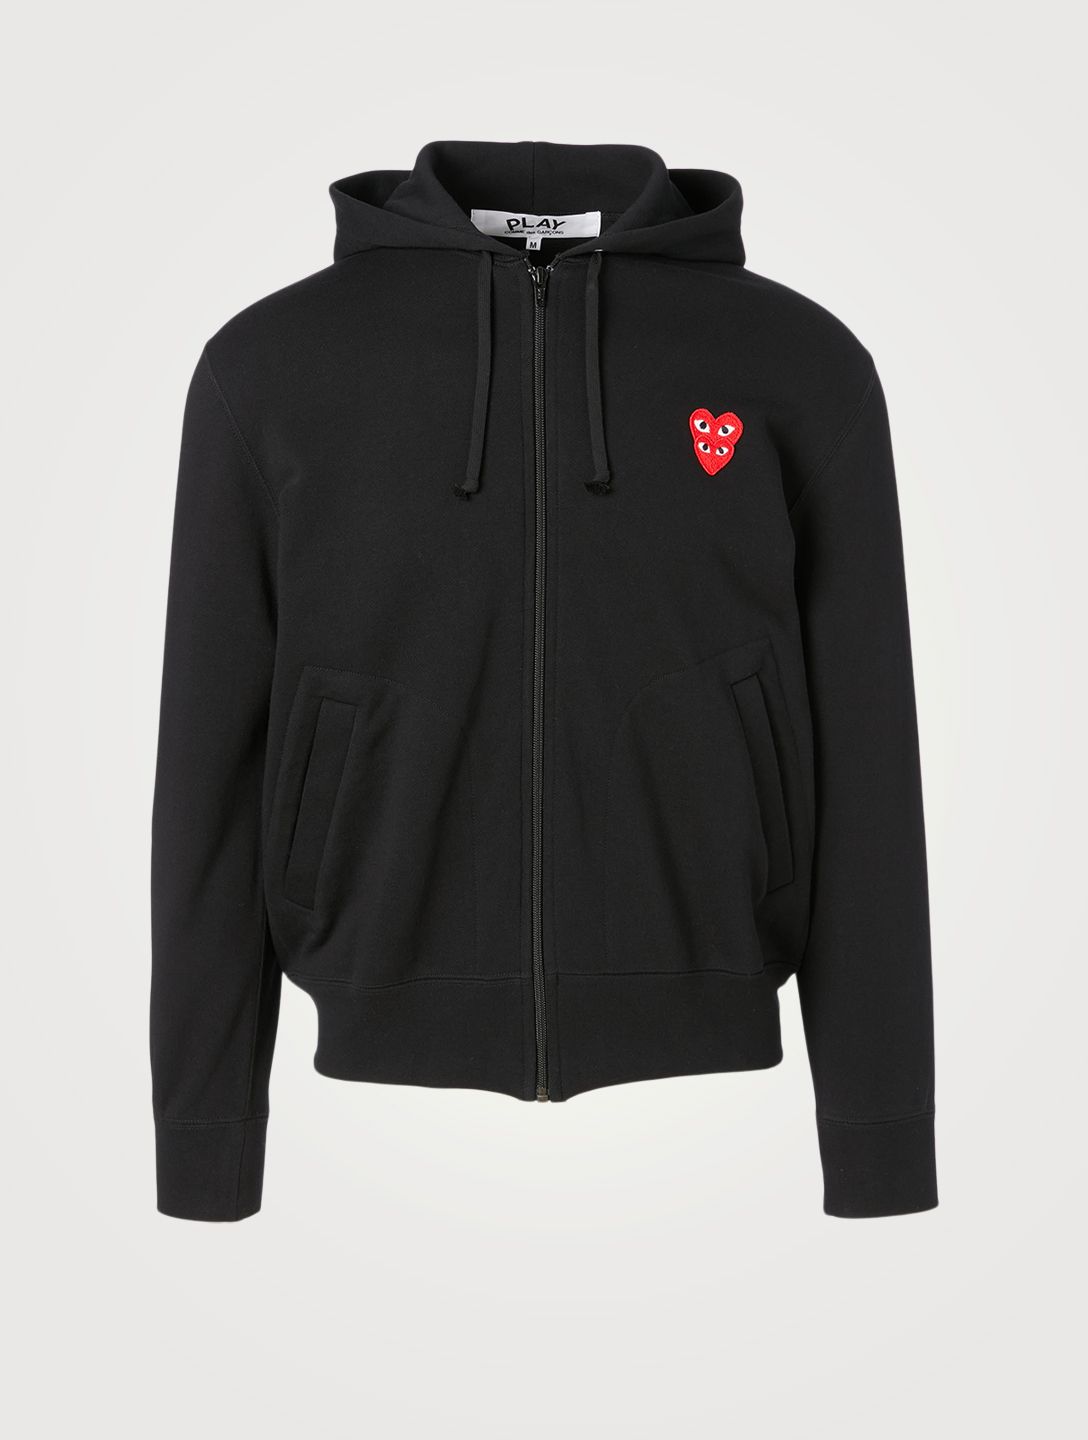 COMME DES GARÇONS PLAY Cotton Zip Hoodie With Overlapping Heart Men's Black